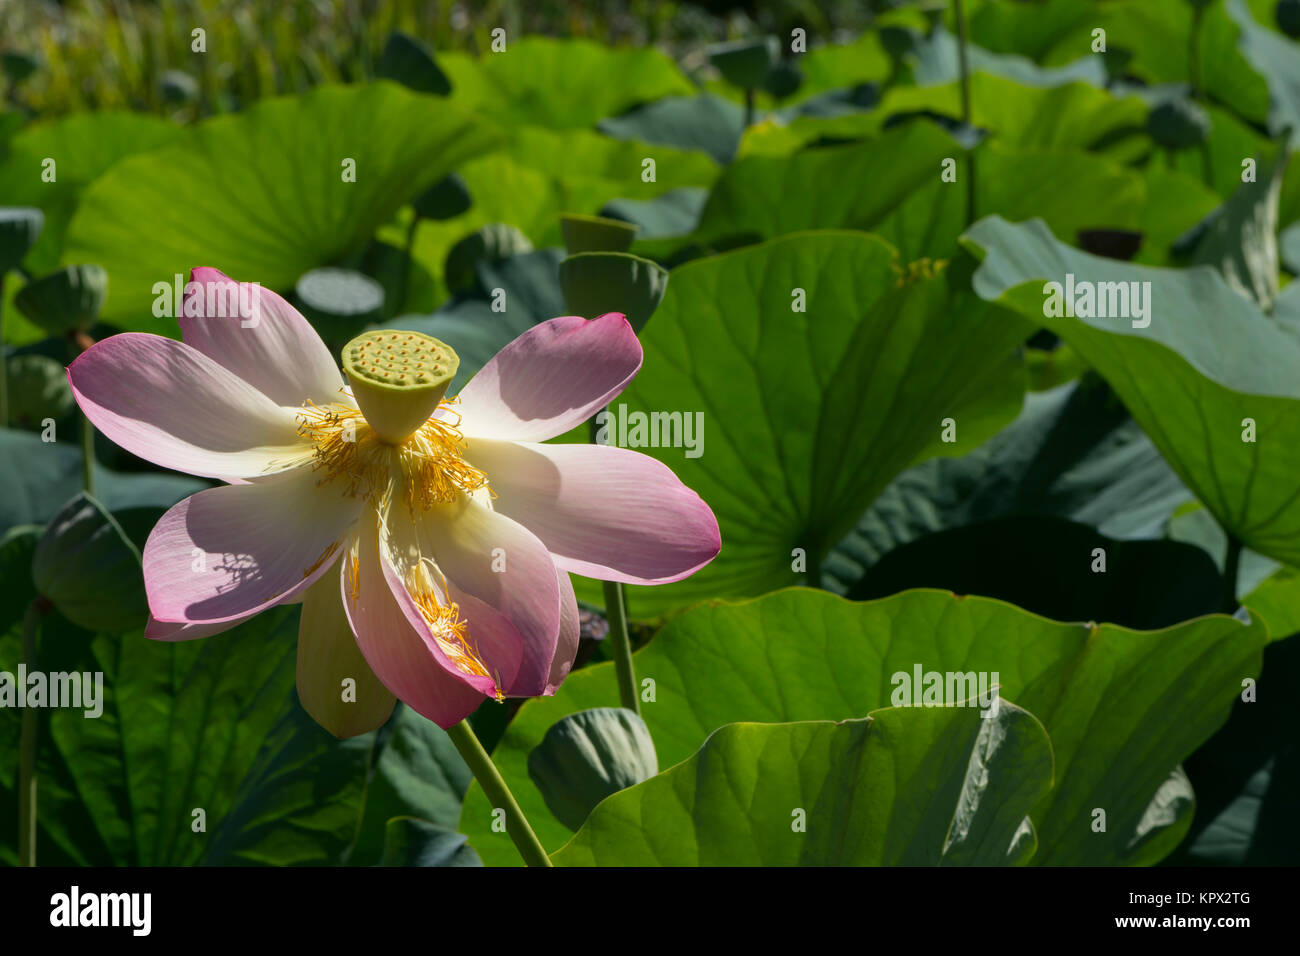 Nelumbo Nucifera Sacred Lotus Flower In The Midst Of Leaves And